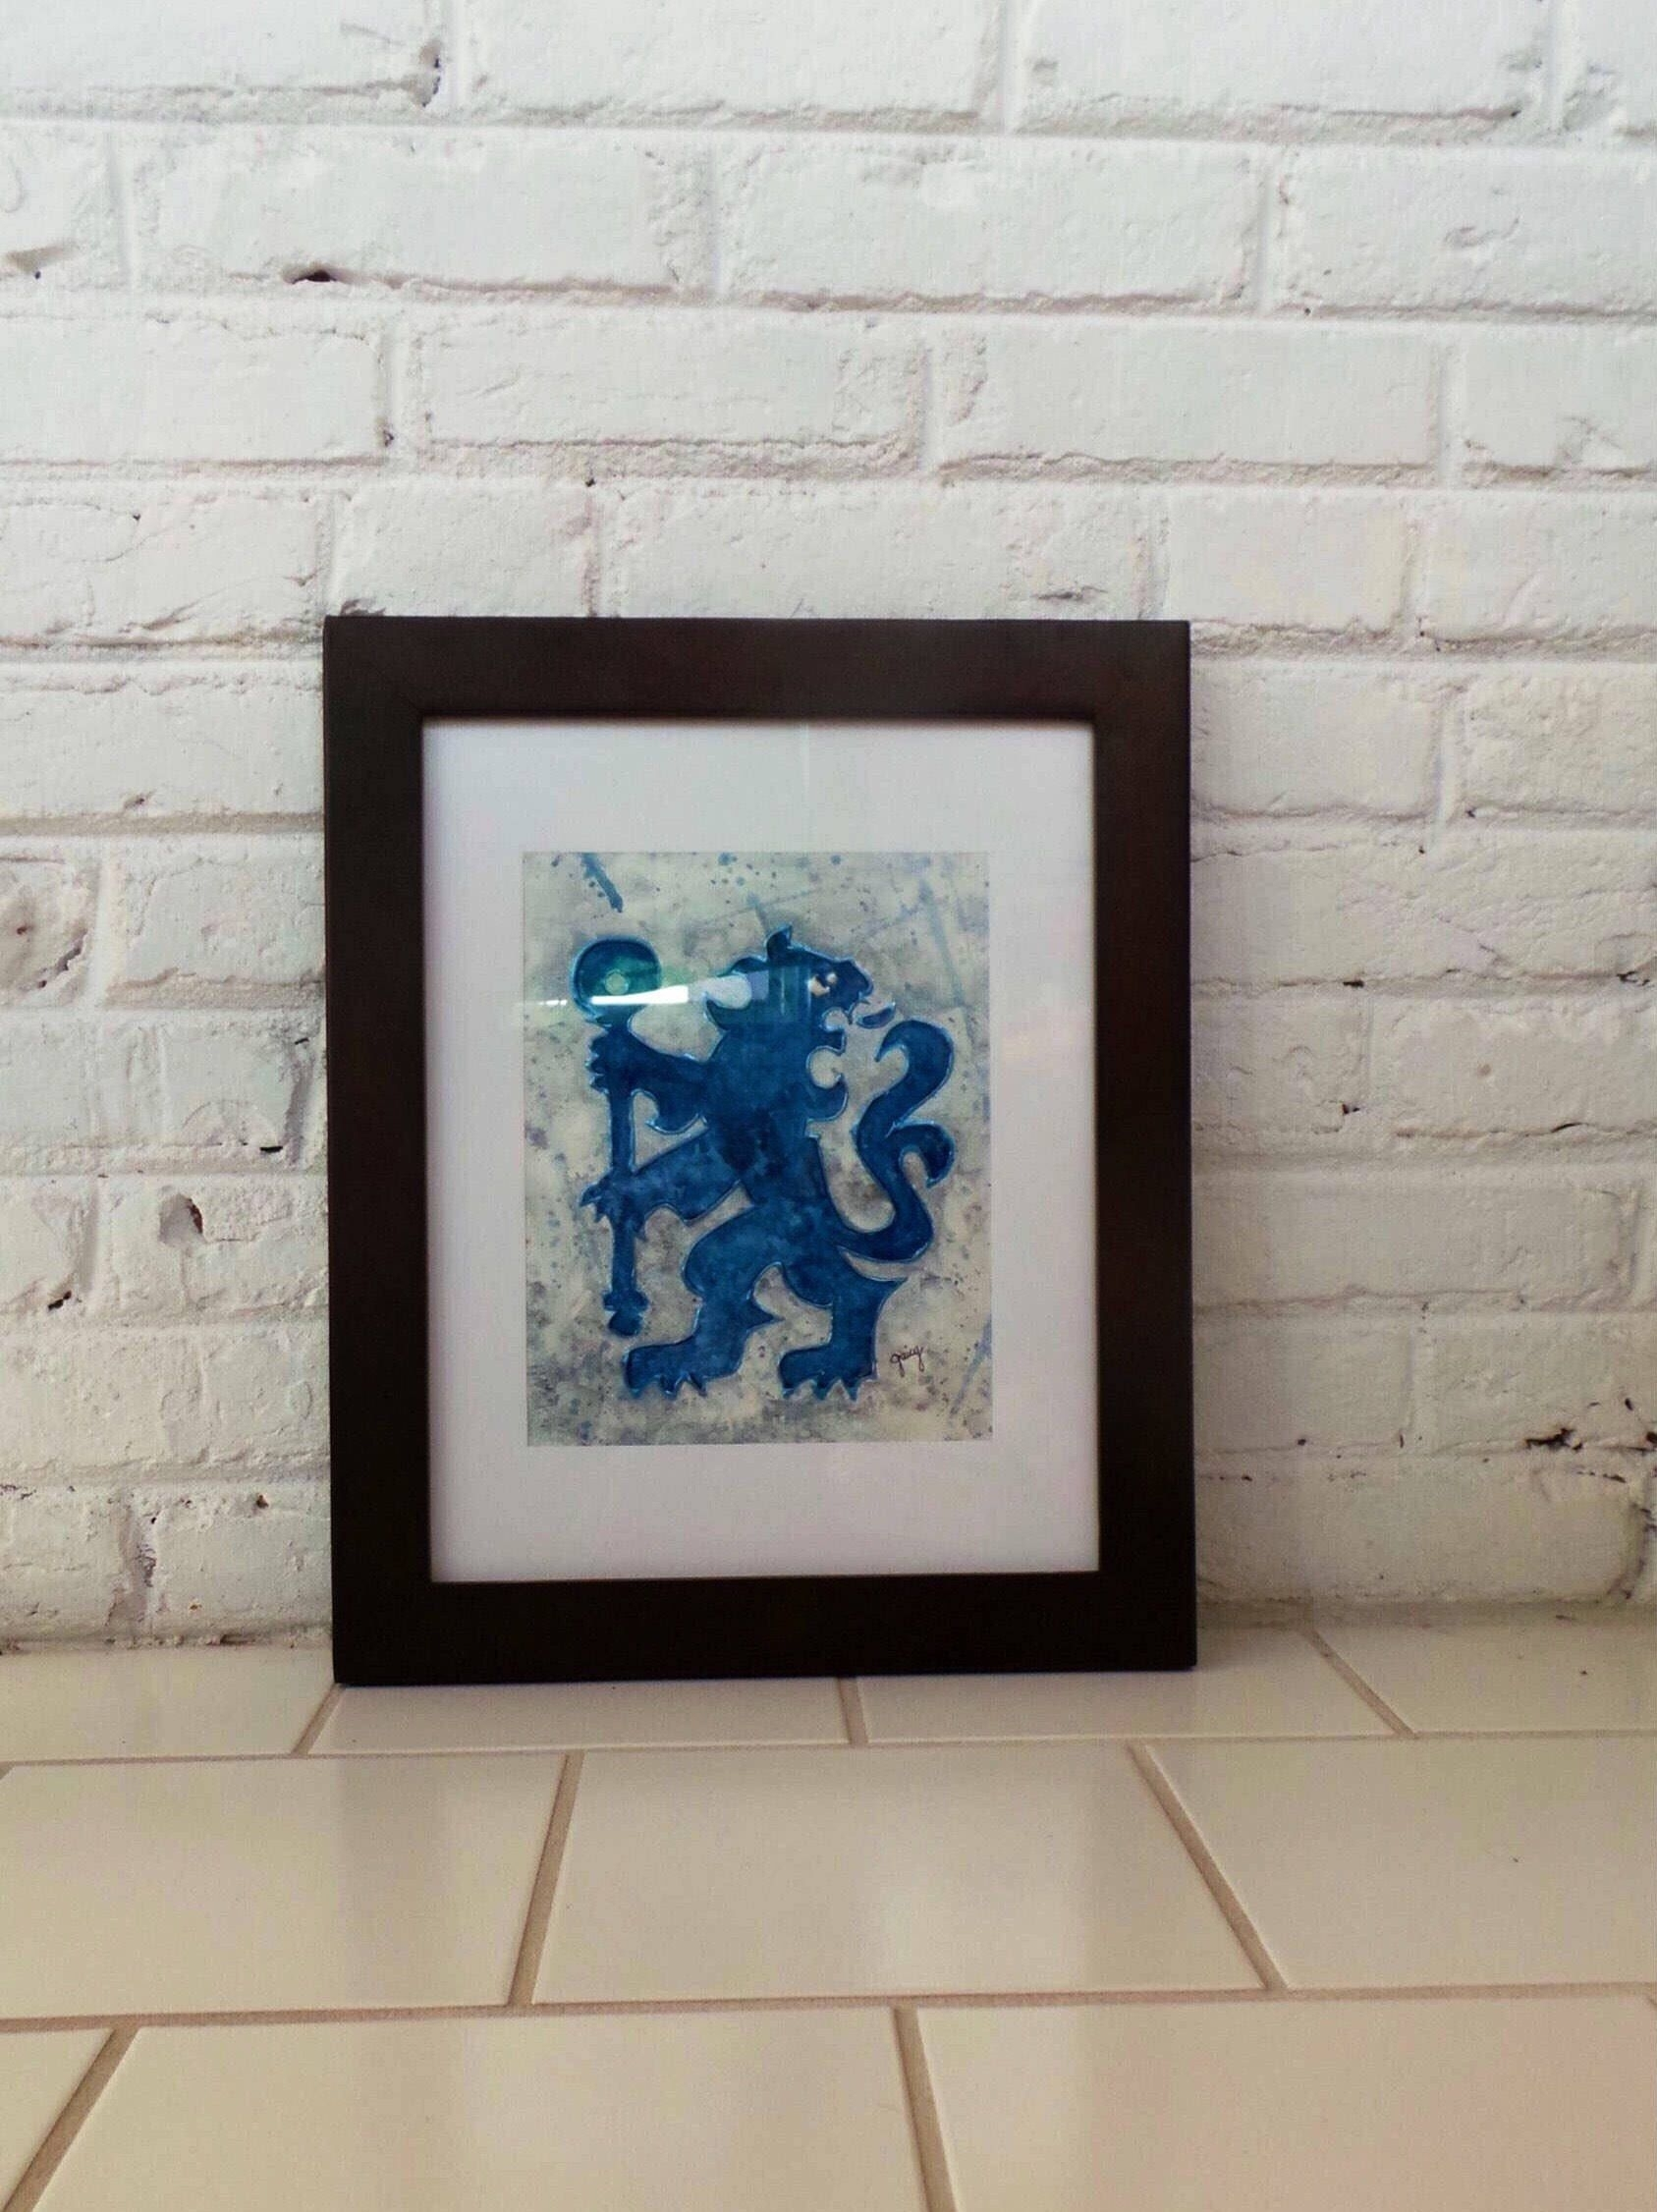 Chelsea Fc Art, Soccer Wall Art, Soccer Fan Gift, Gift For Him With Most Up To Date Soccer Wall Art (Gallery 10 of 20)